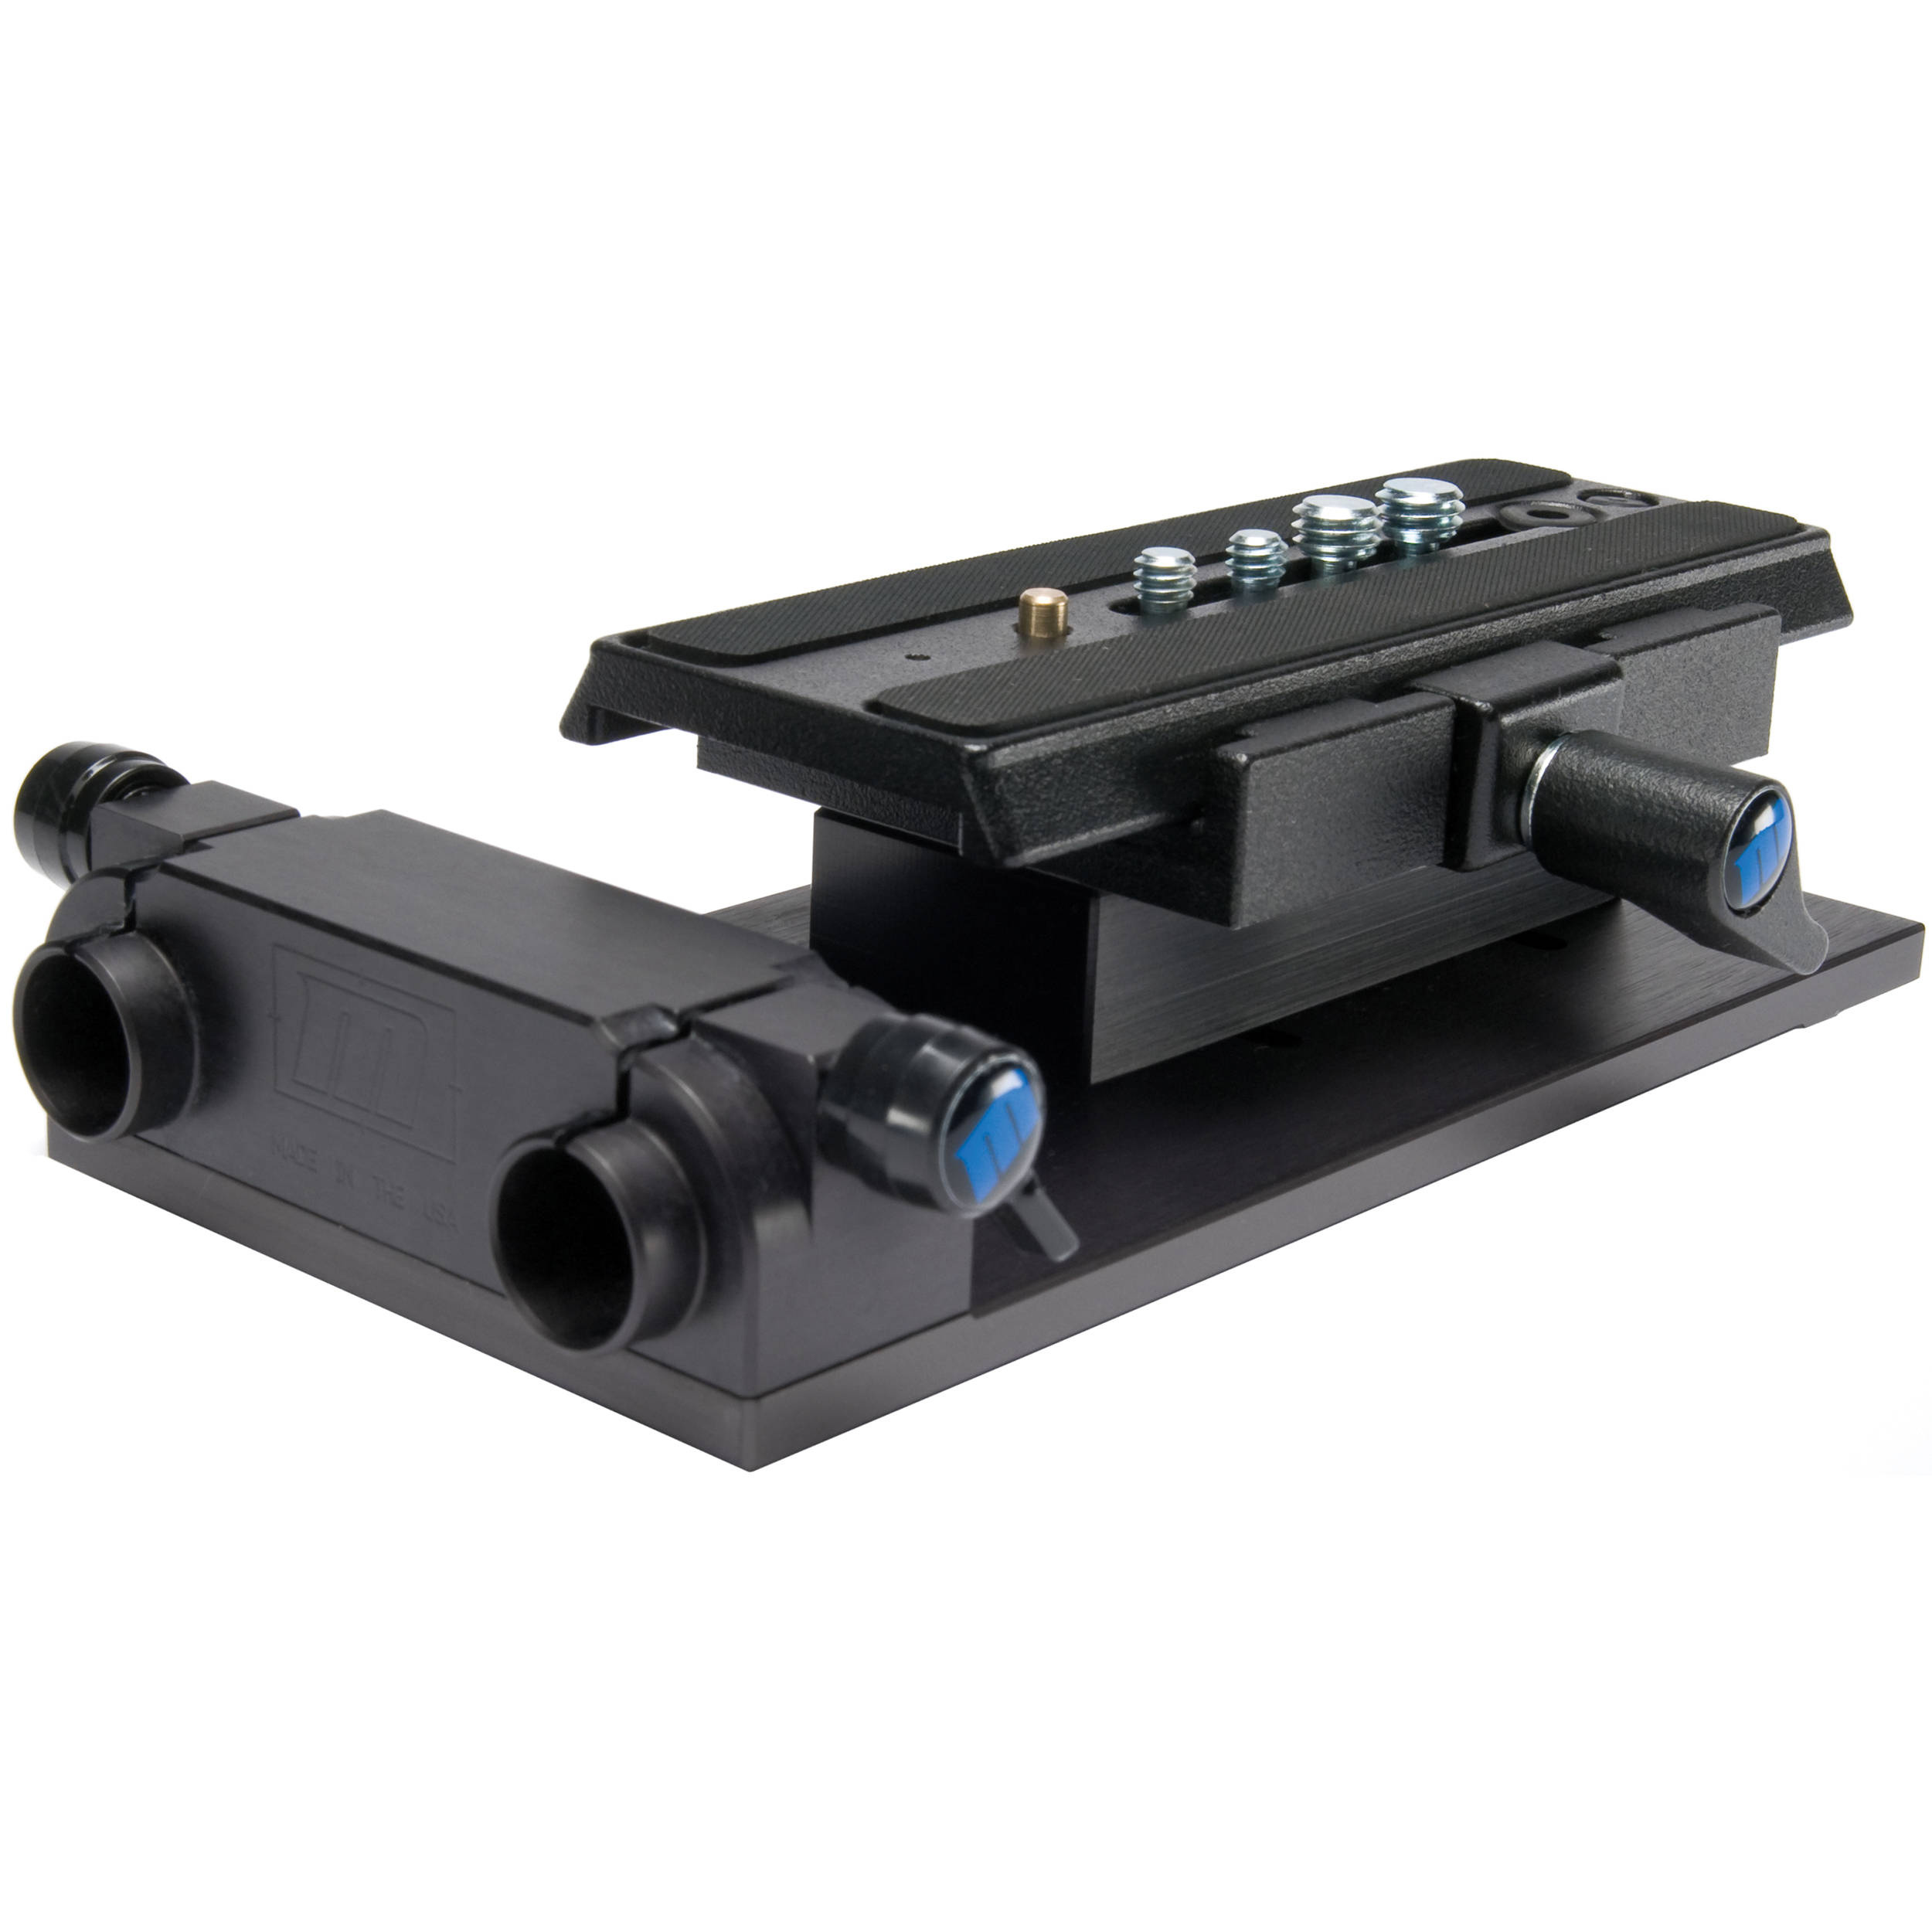 Redrock Micro micro Support Baseplate Low riser